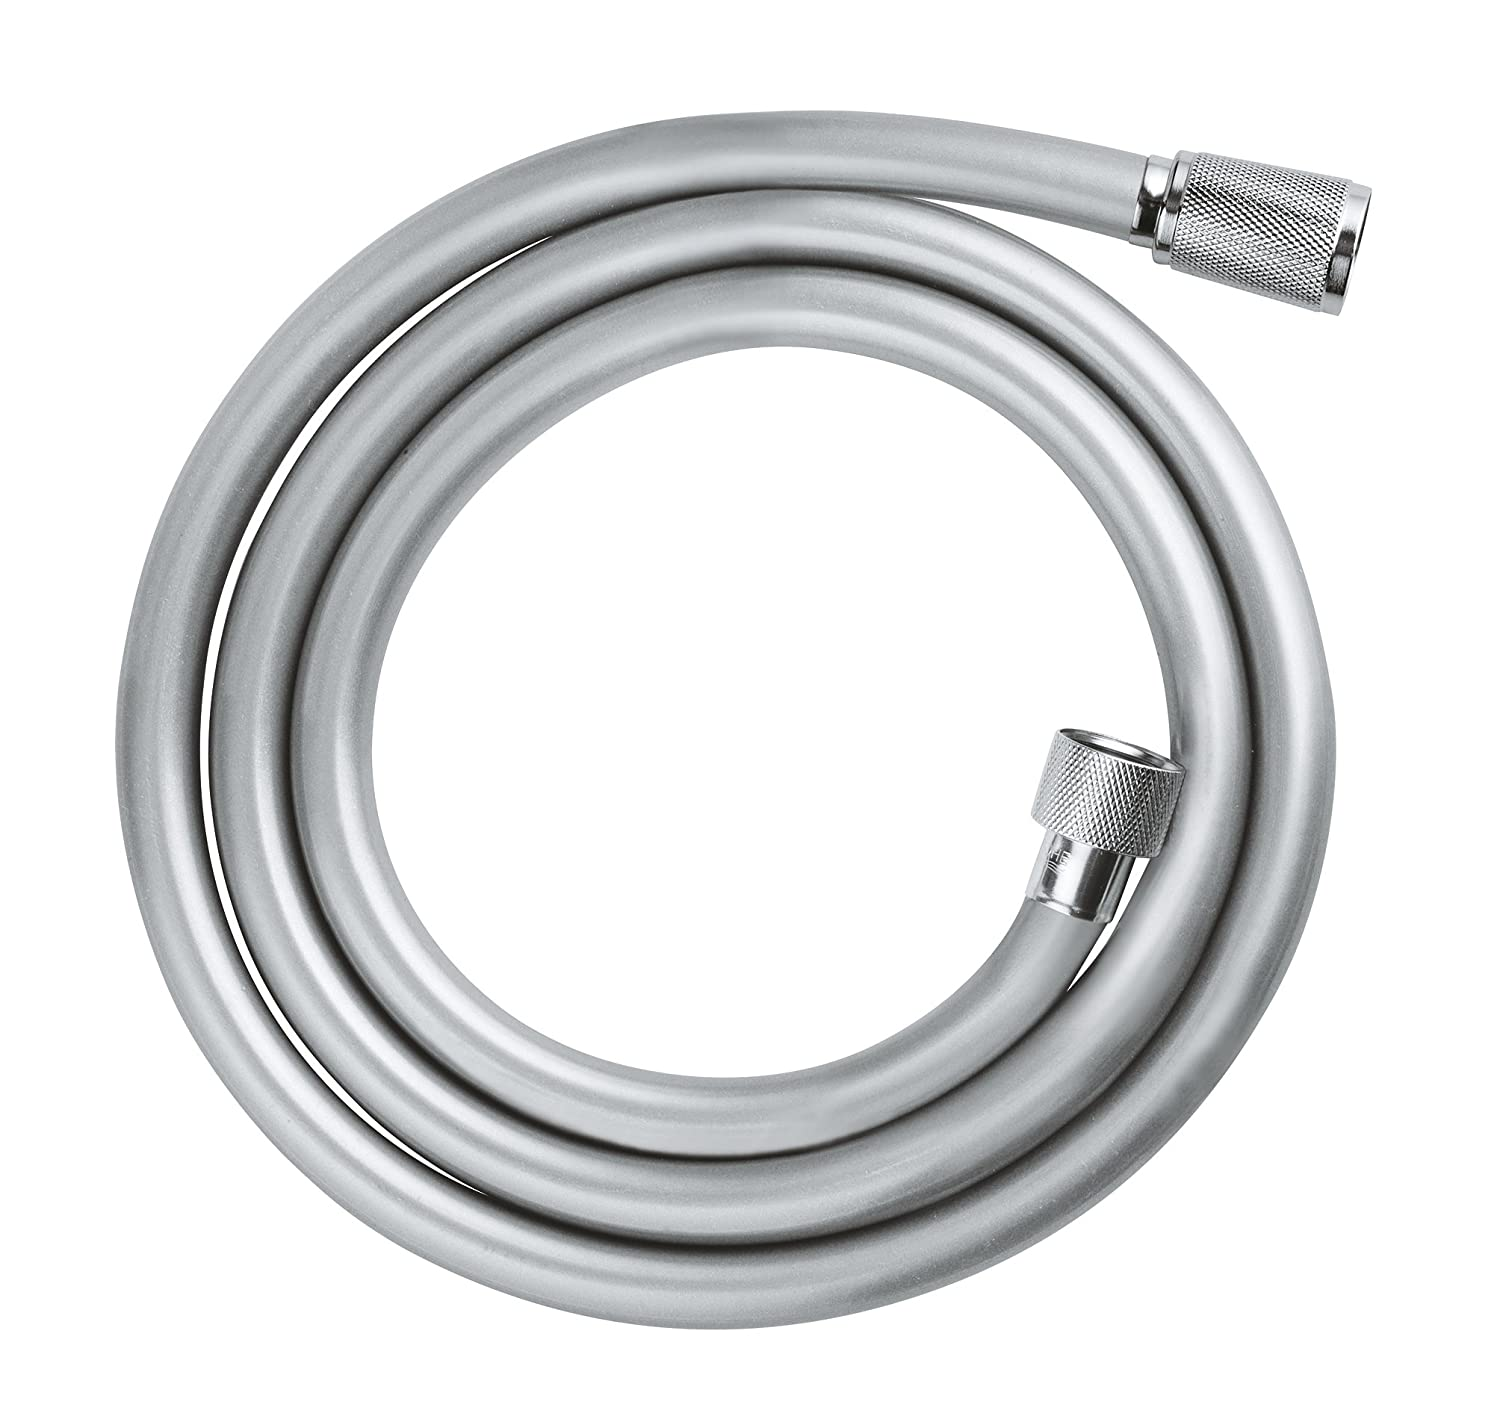 GROHE 28150001 Relexaflex Shower Hose, Chrome, 1250 mm